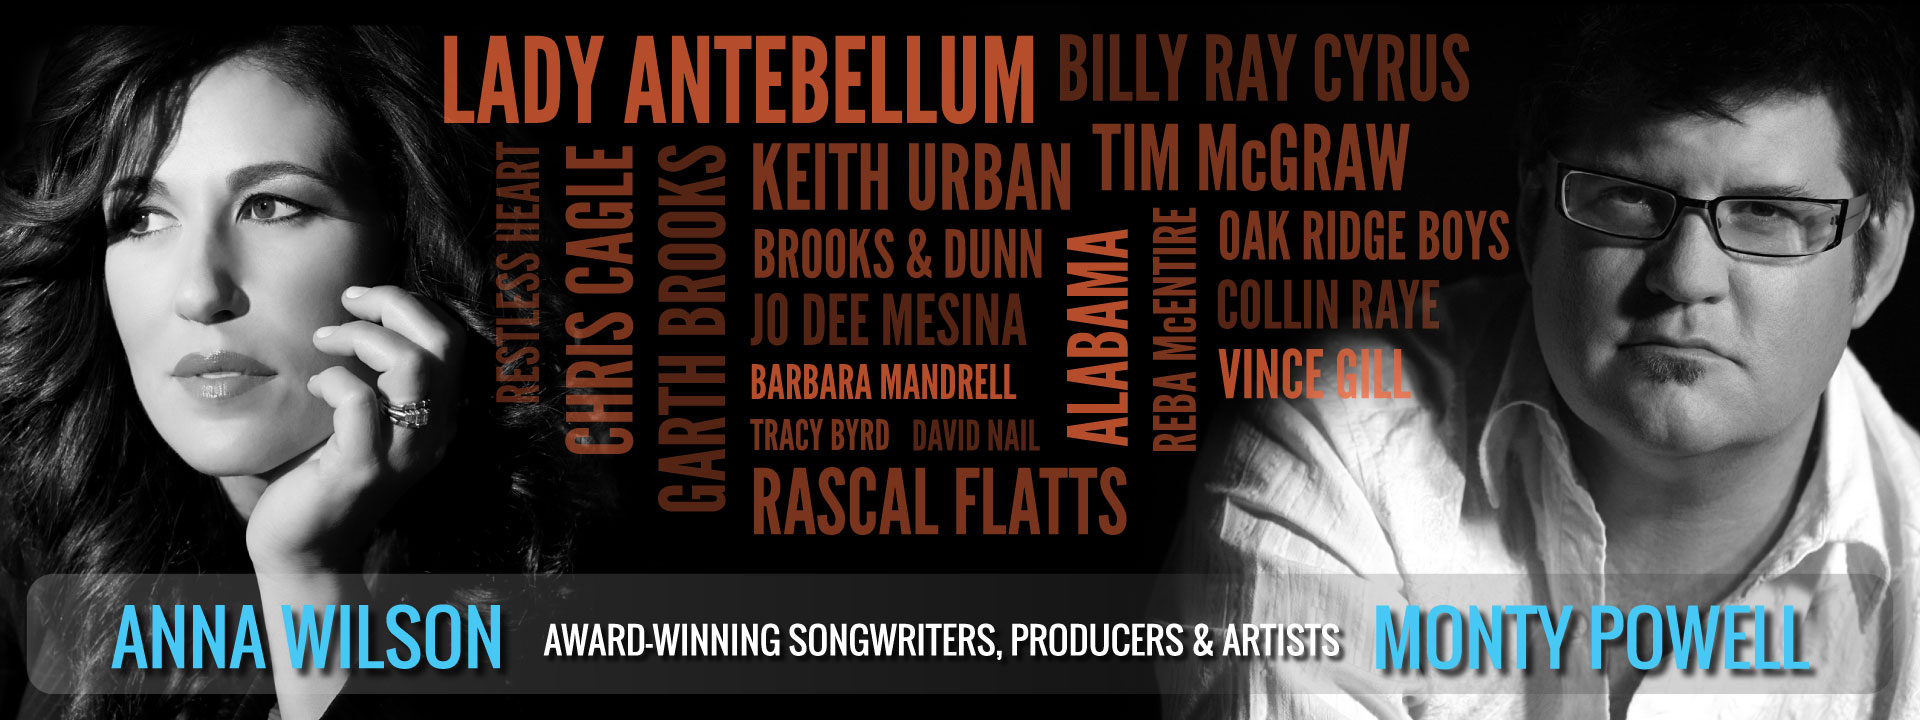 Monty Powell & Anna Wilson: Award-Winning Songwriters, Producers & Artists